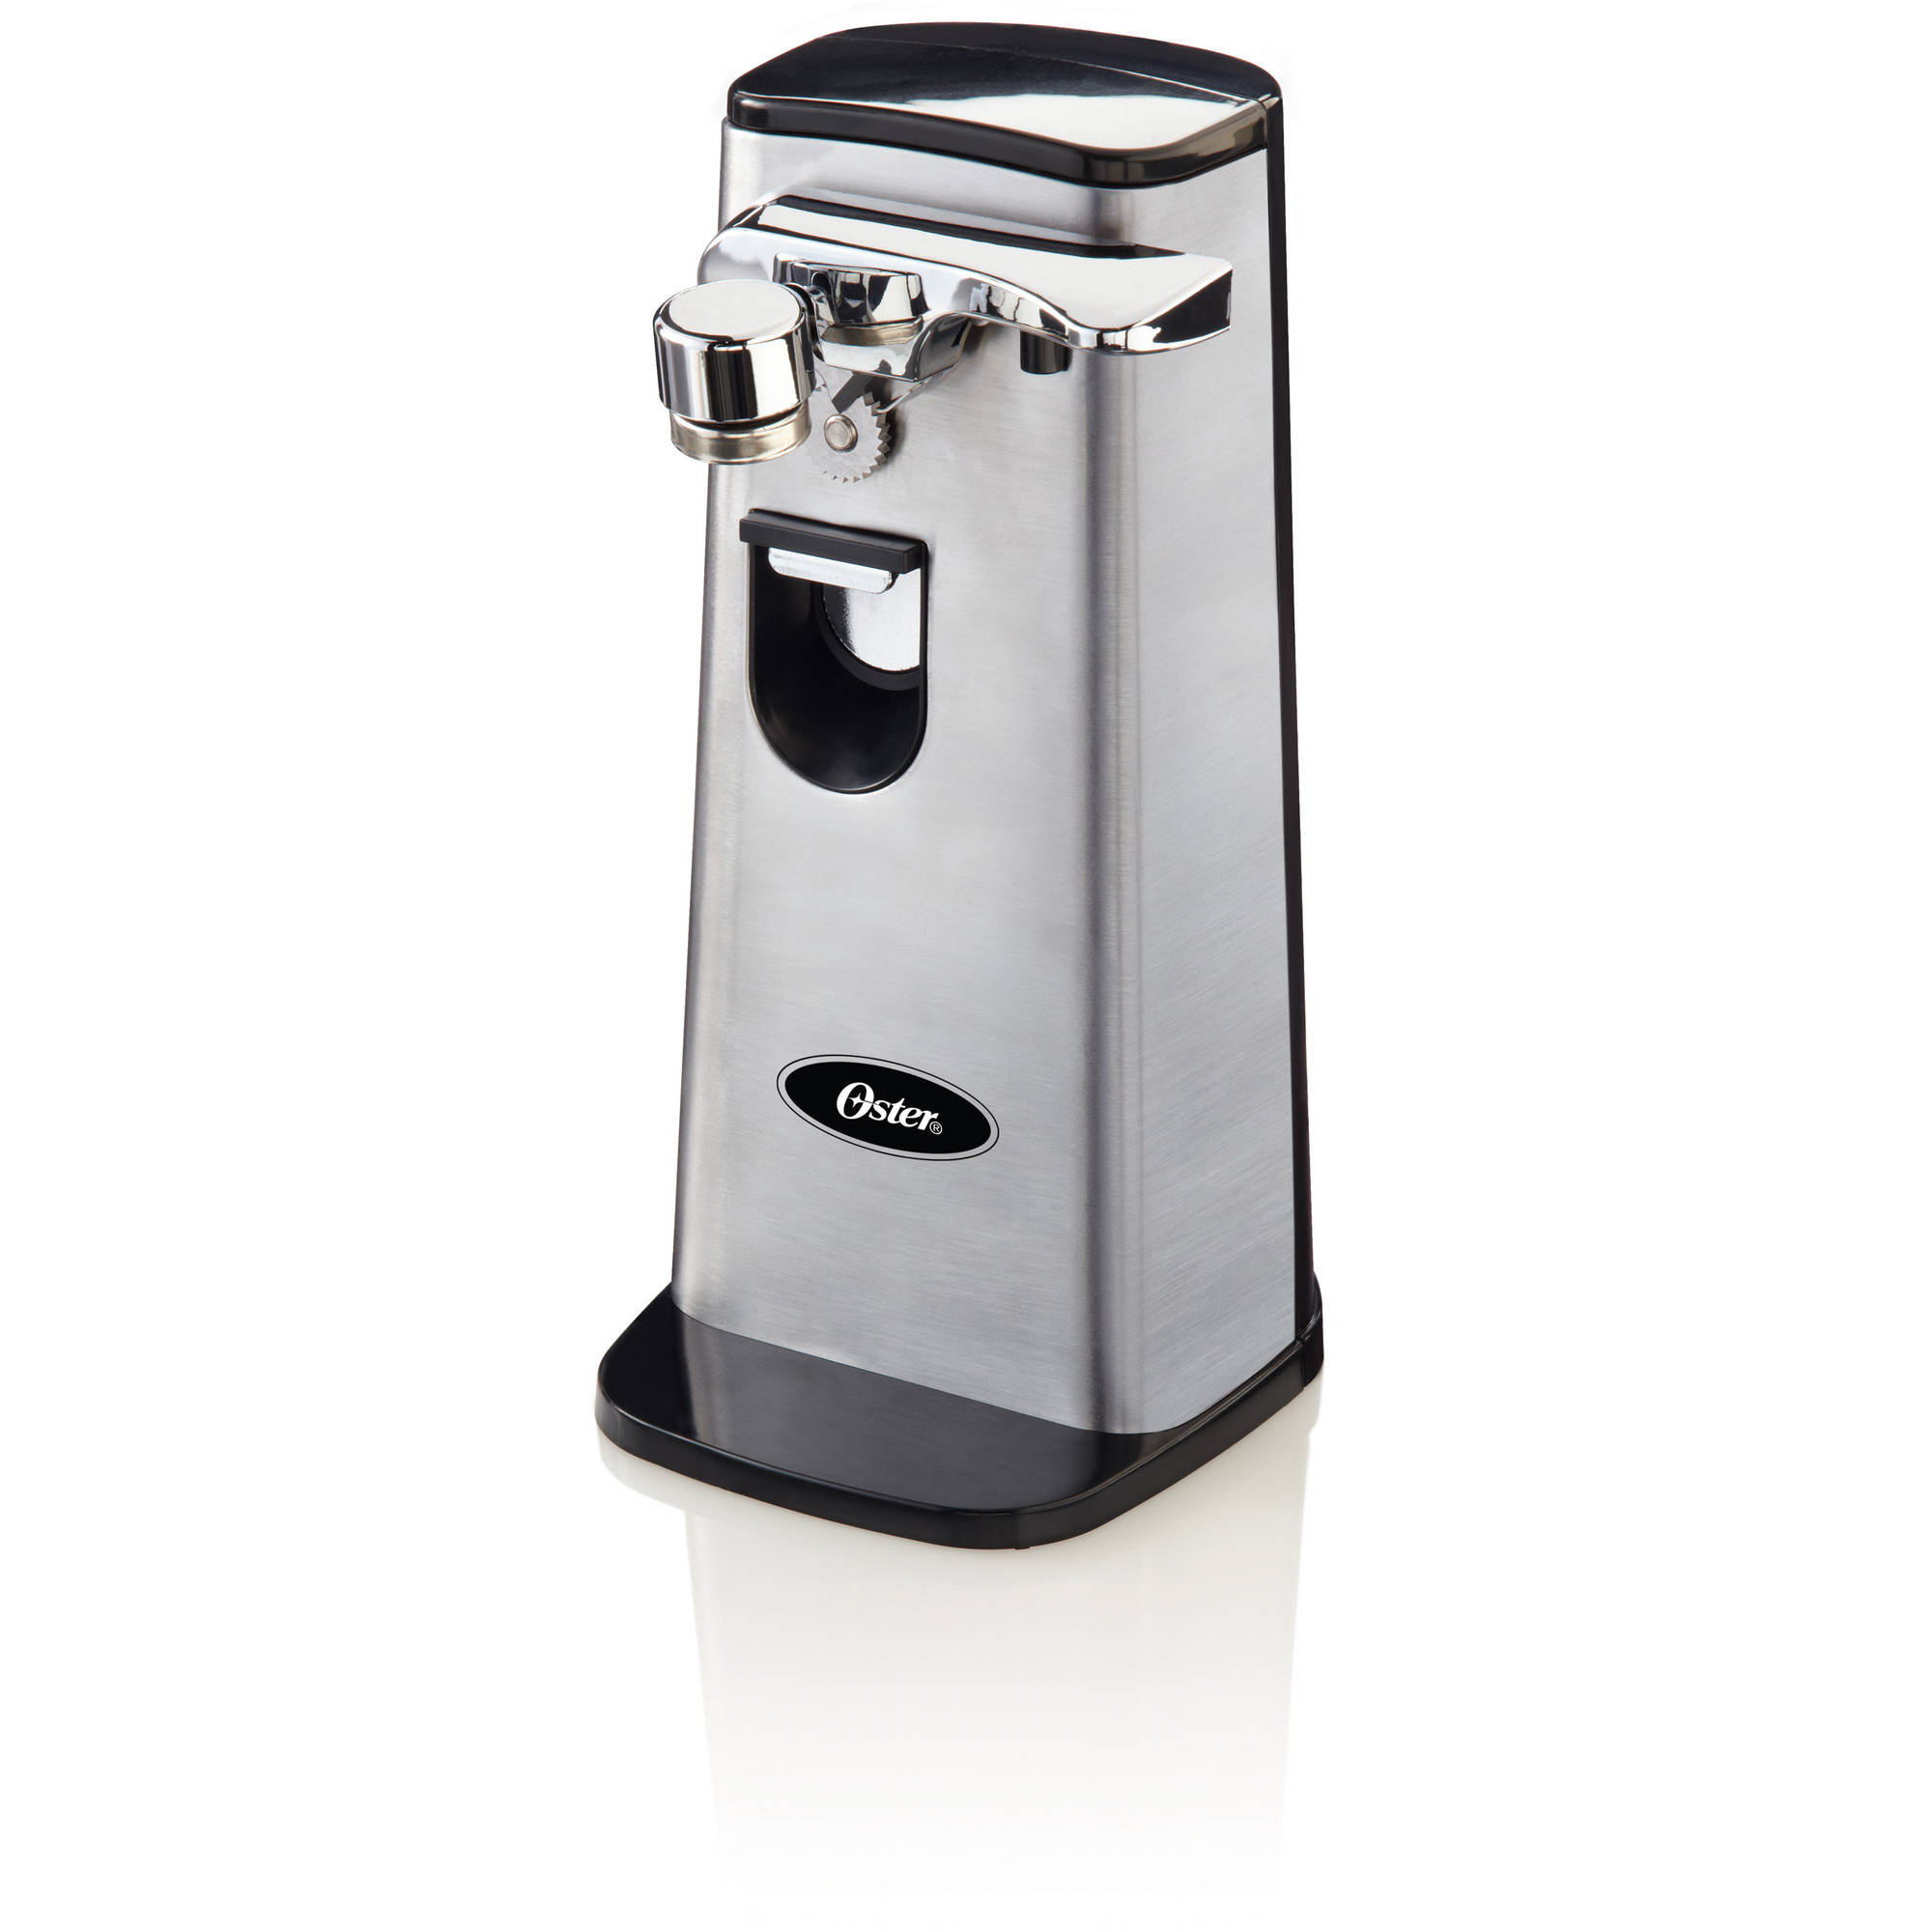 Oster Retractable Cord Stainless Steel Can Opener by Oster